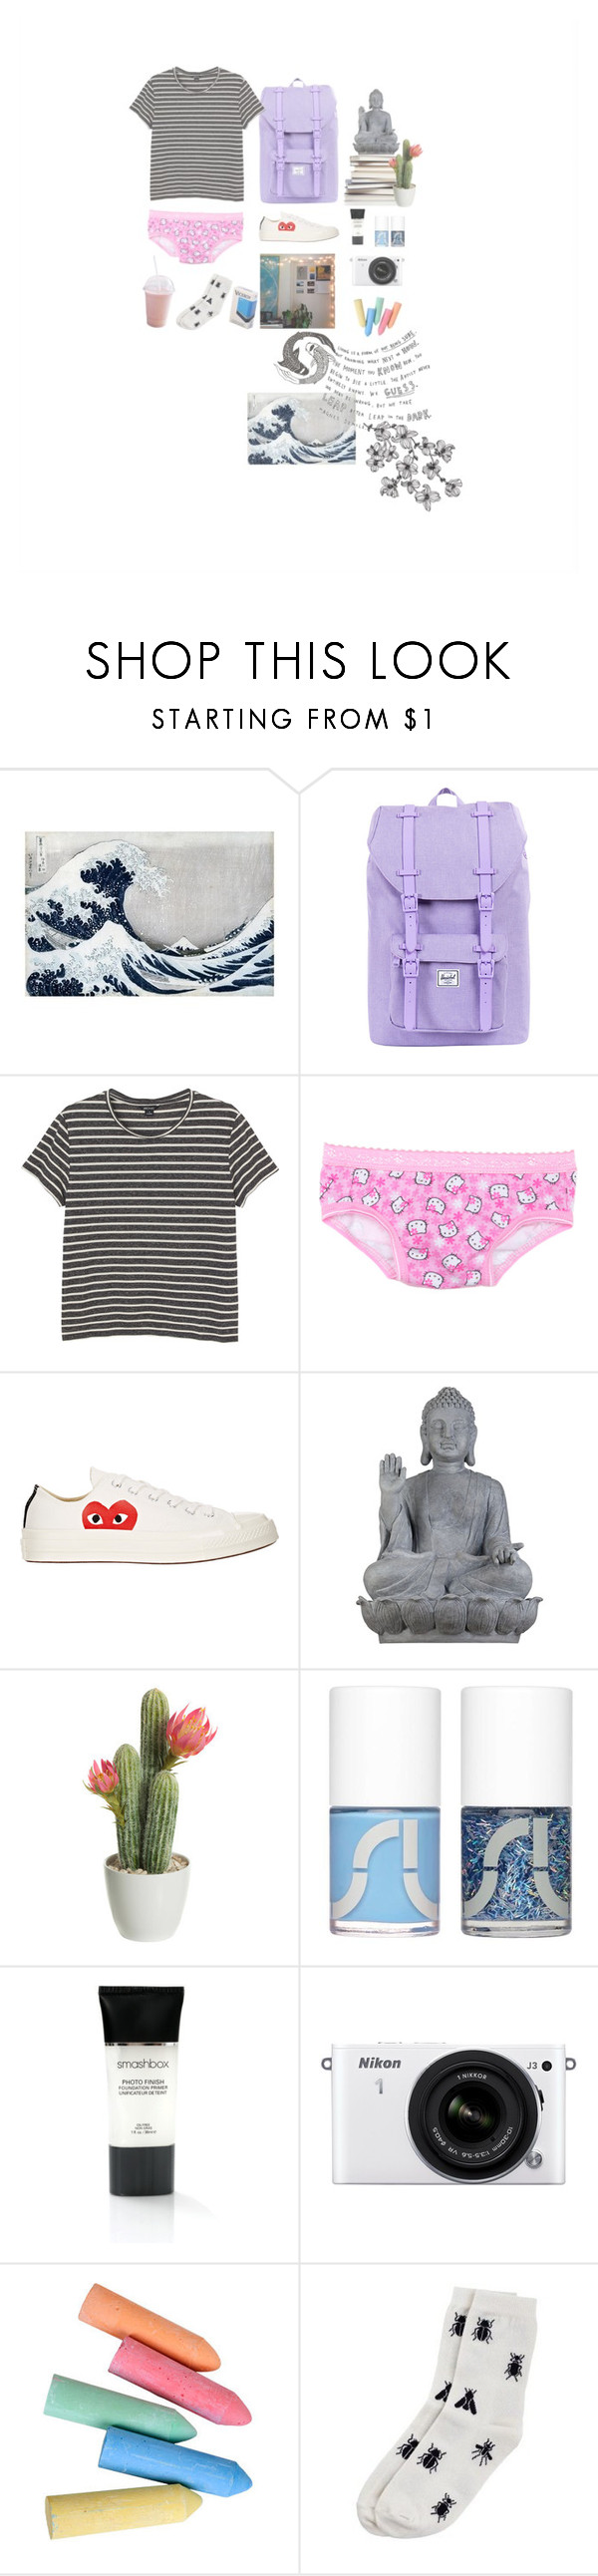 """""""Vihor"""" by teodora-teddy ❤ liked on Polyvore featuring Herschel Supply Co., Monki, Hello Kitty, Play Comme des Garçons, Universal Lighting and Decor, Uslu Airlines, Smashbox, Nikon, women's clothing and women's fashion"""